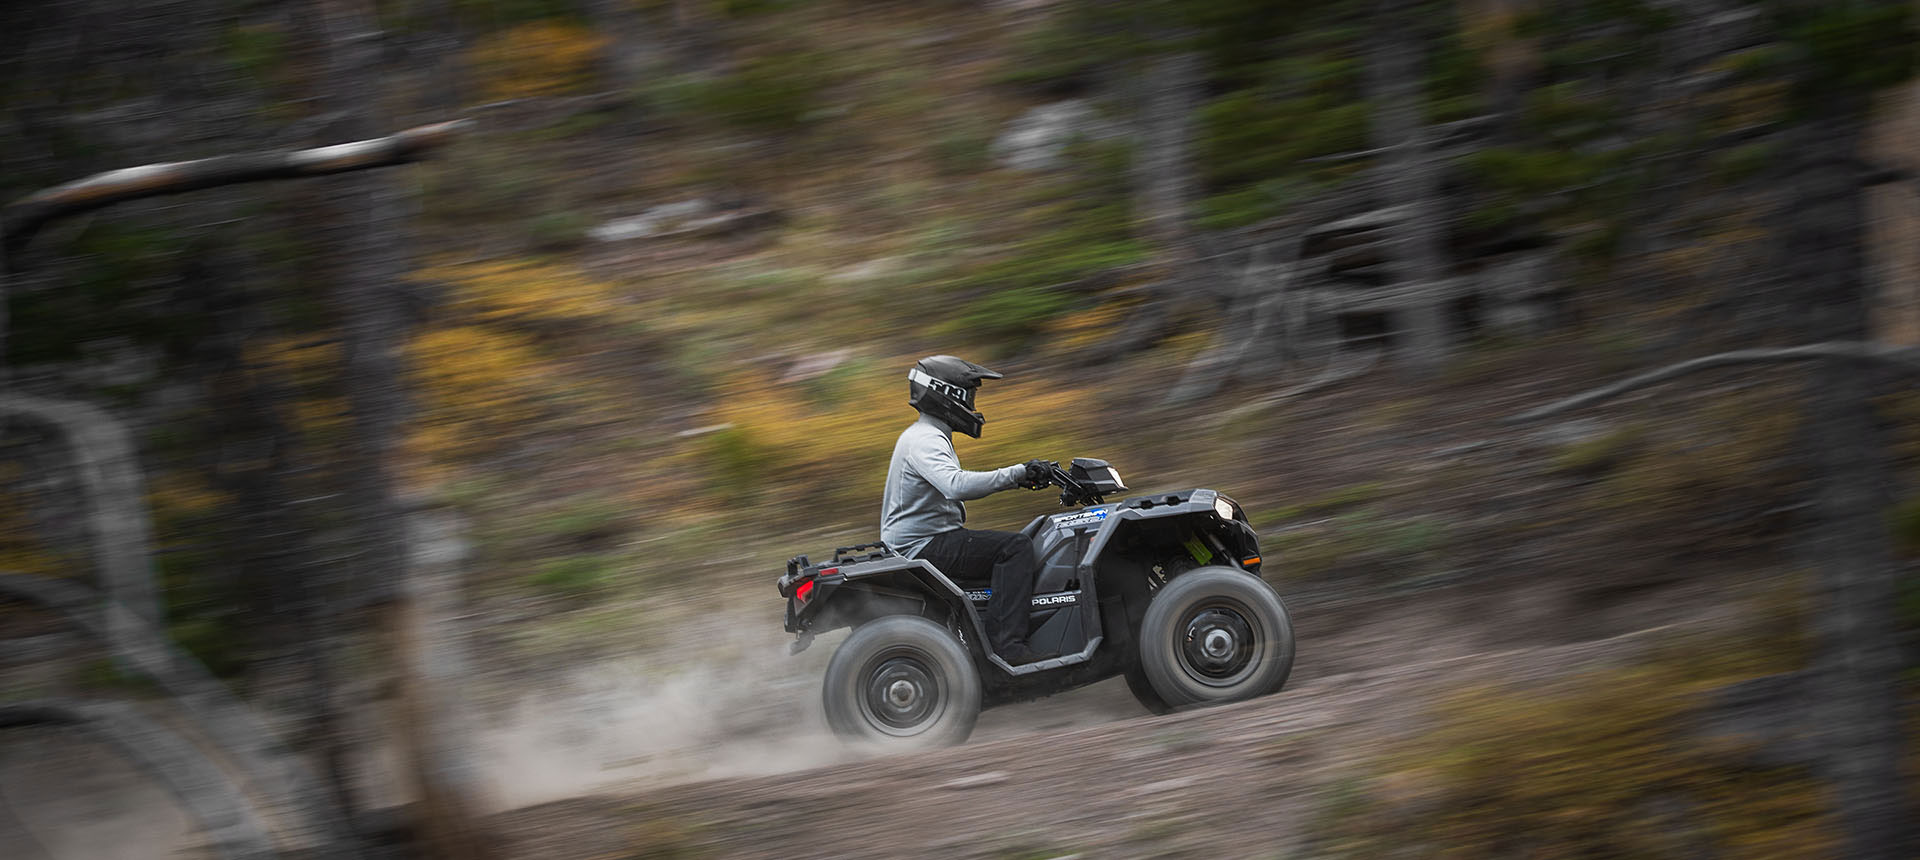 Racing along a trail in the woods on a Polaris® ATV